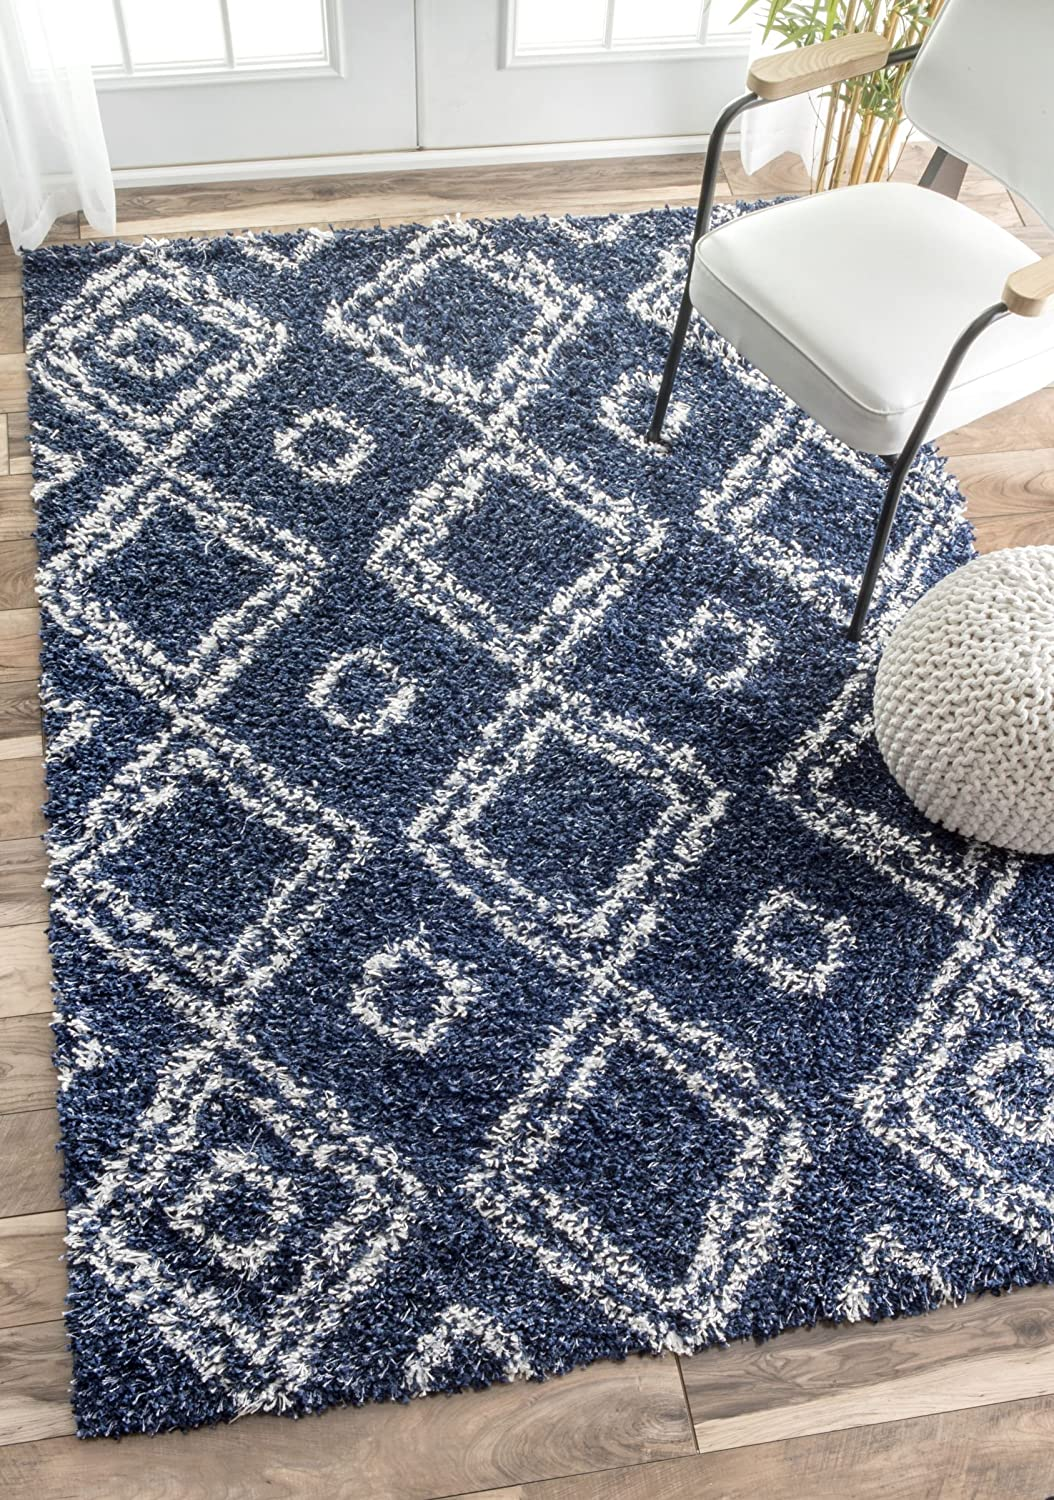 Trellis Area Rug Blue Shag Navy 5x8 Lattice Carpet